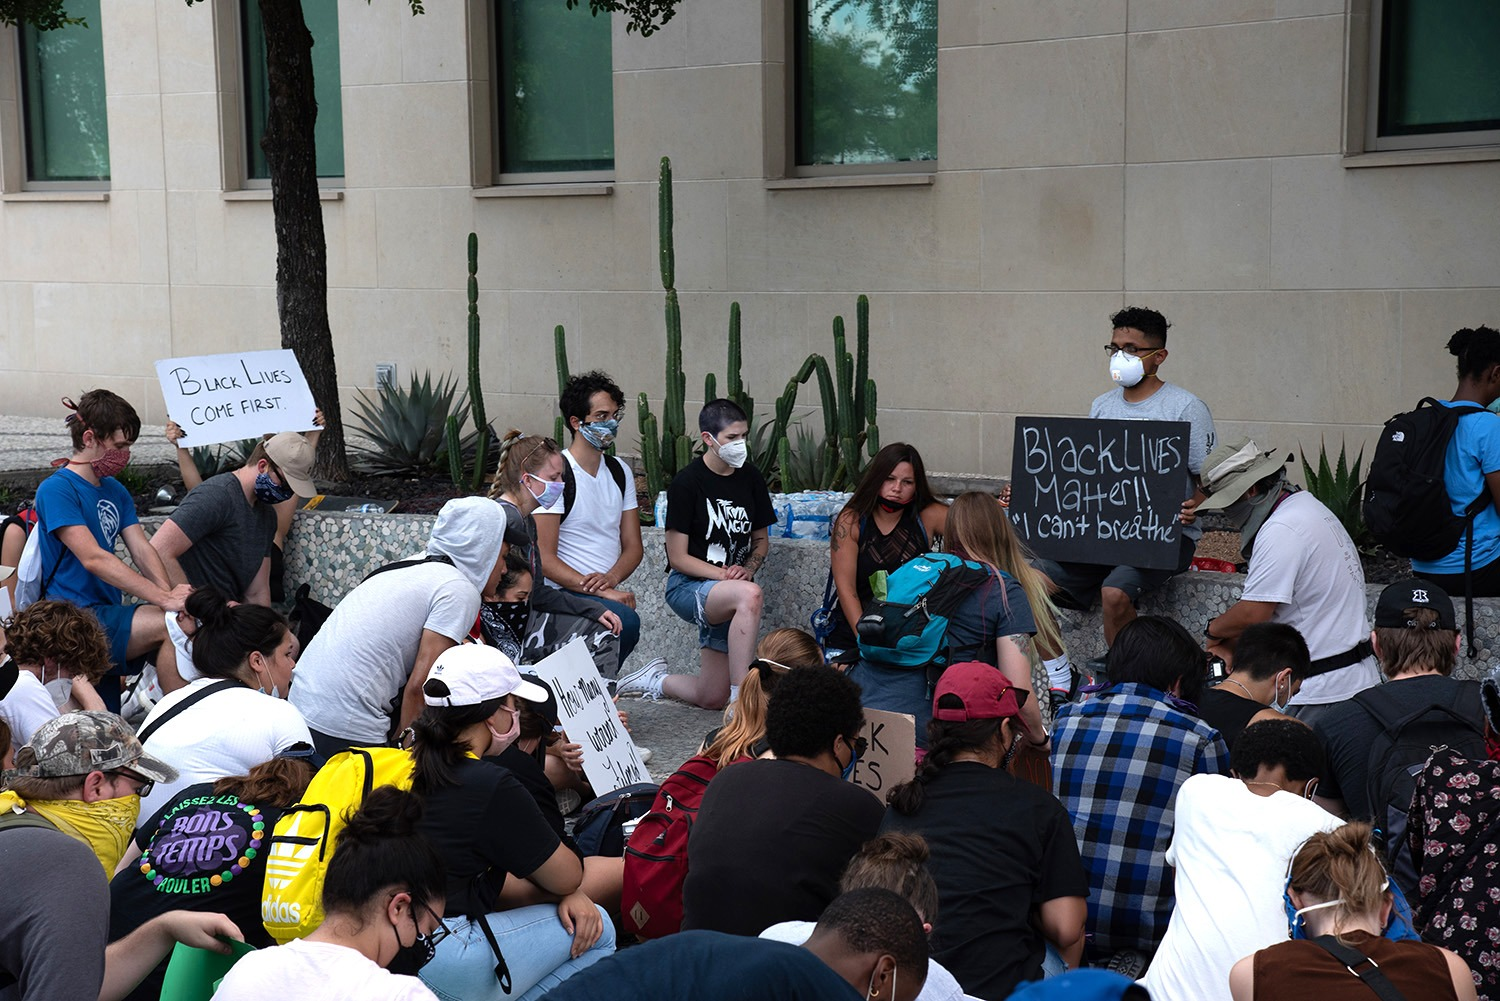 Protestors spend nine minutes in silence, many on a knee, during a peacful protest, Thursday, June 4 in front of the Public Safety Headquarters at 315 S Santa Rosa.Photo by V. Finster | Heron Contributor